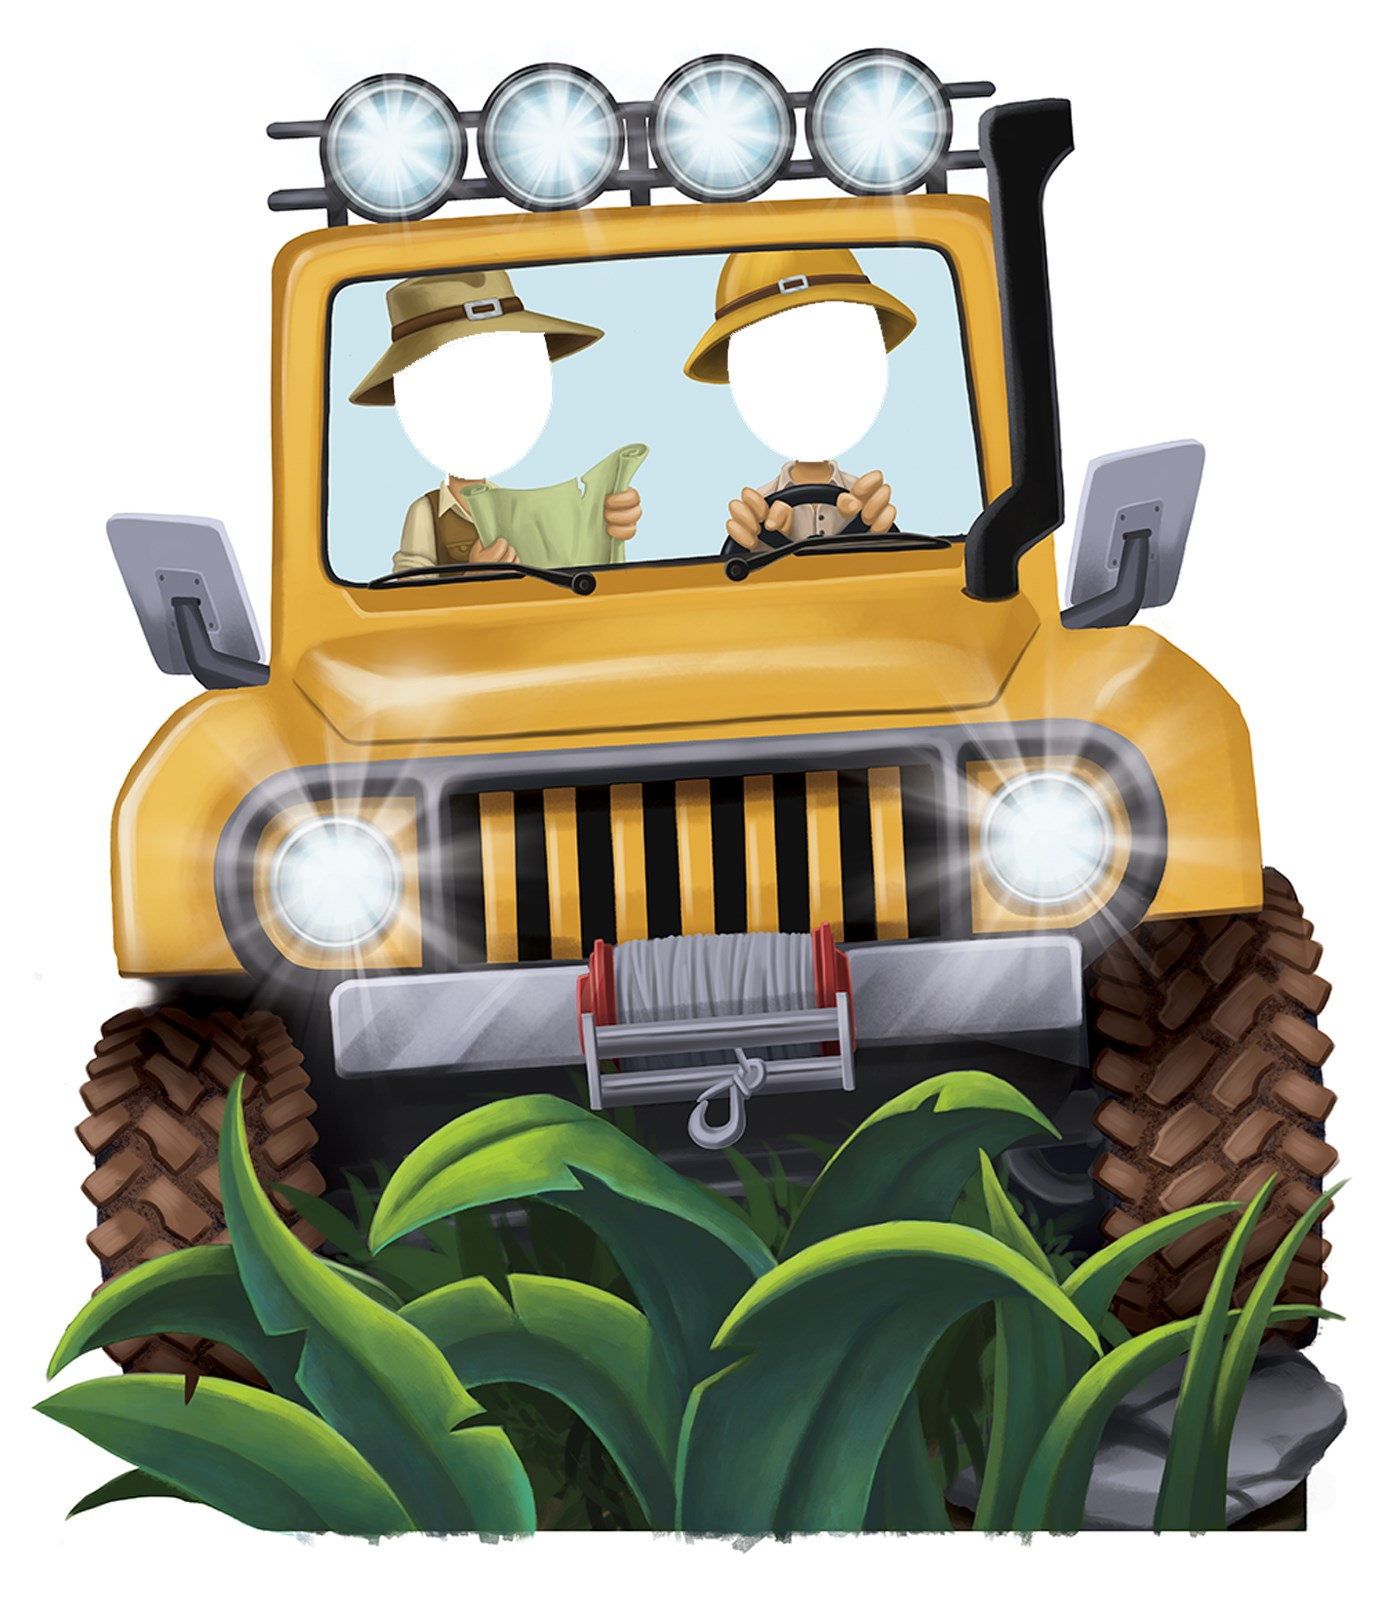 Jungle Party Jeep Standee Prop 45 Tall